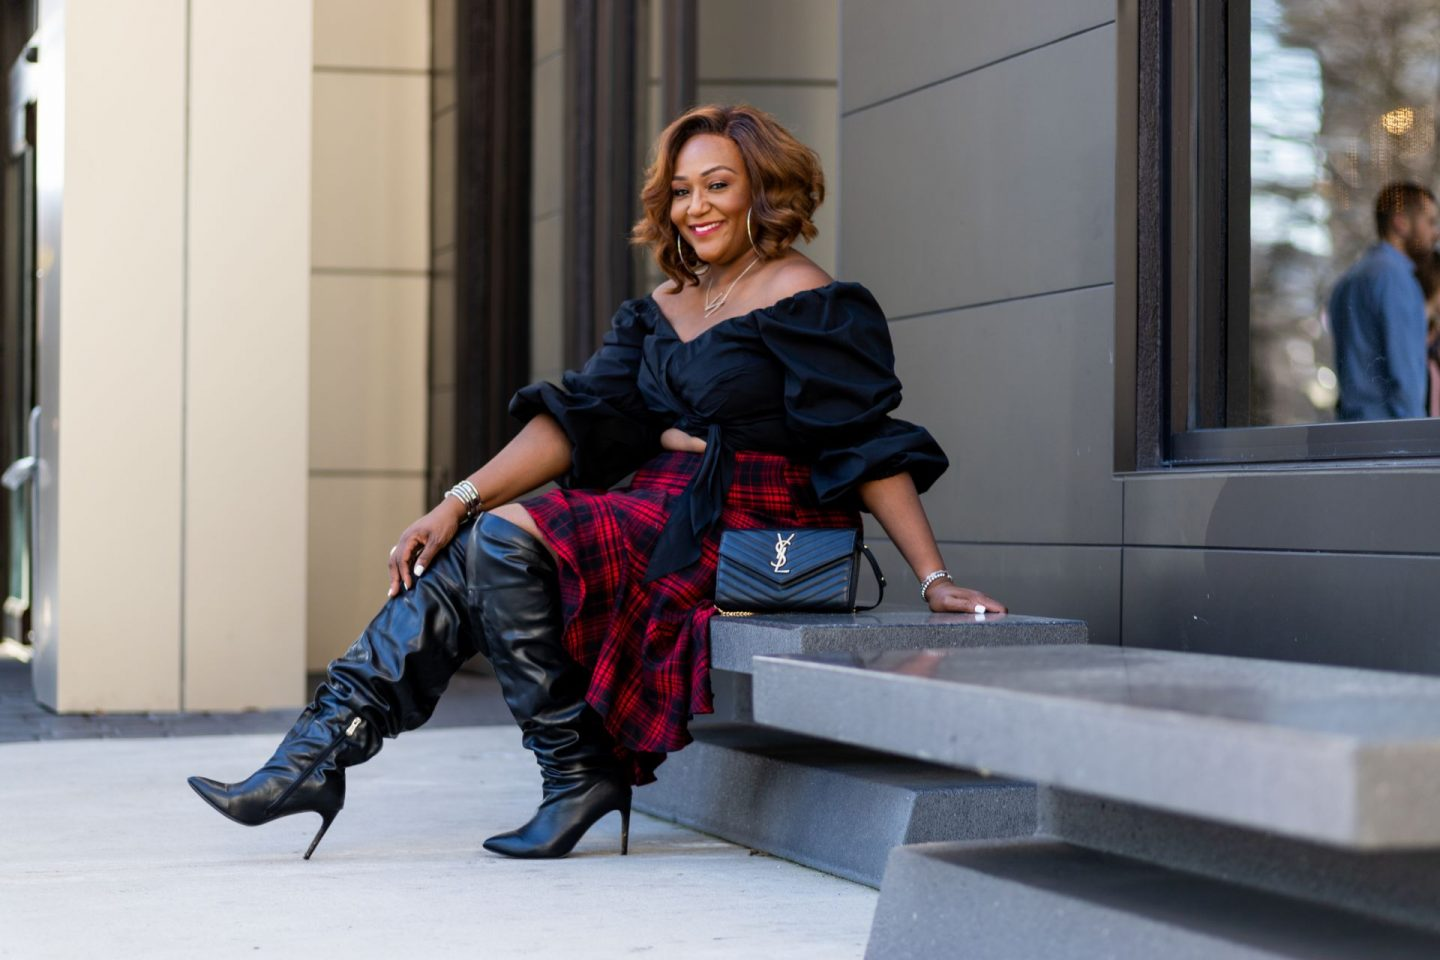 Black woman sitting on bench wearing over the knee boots